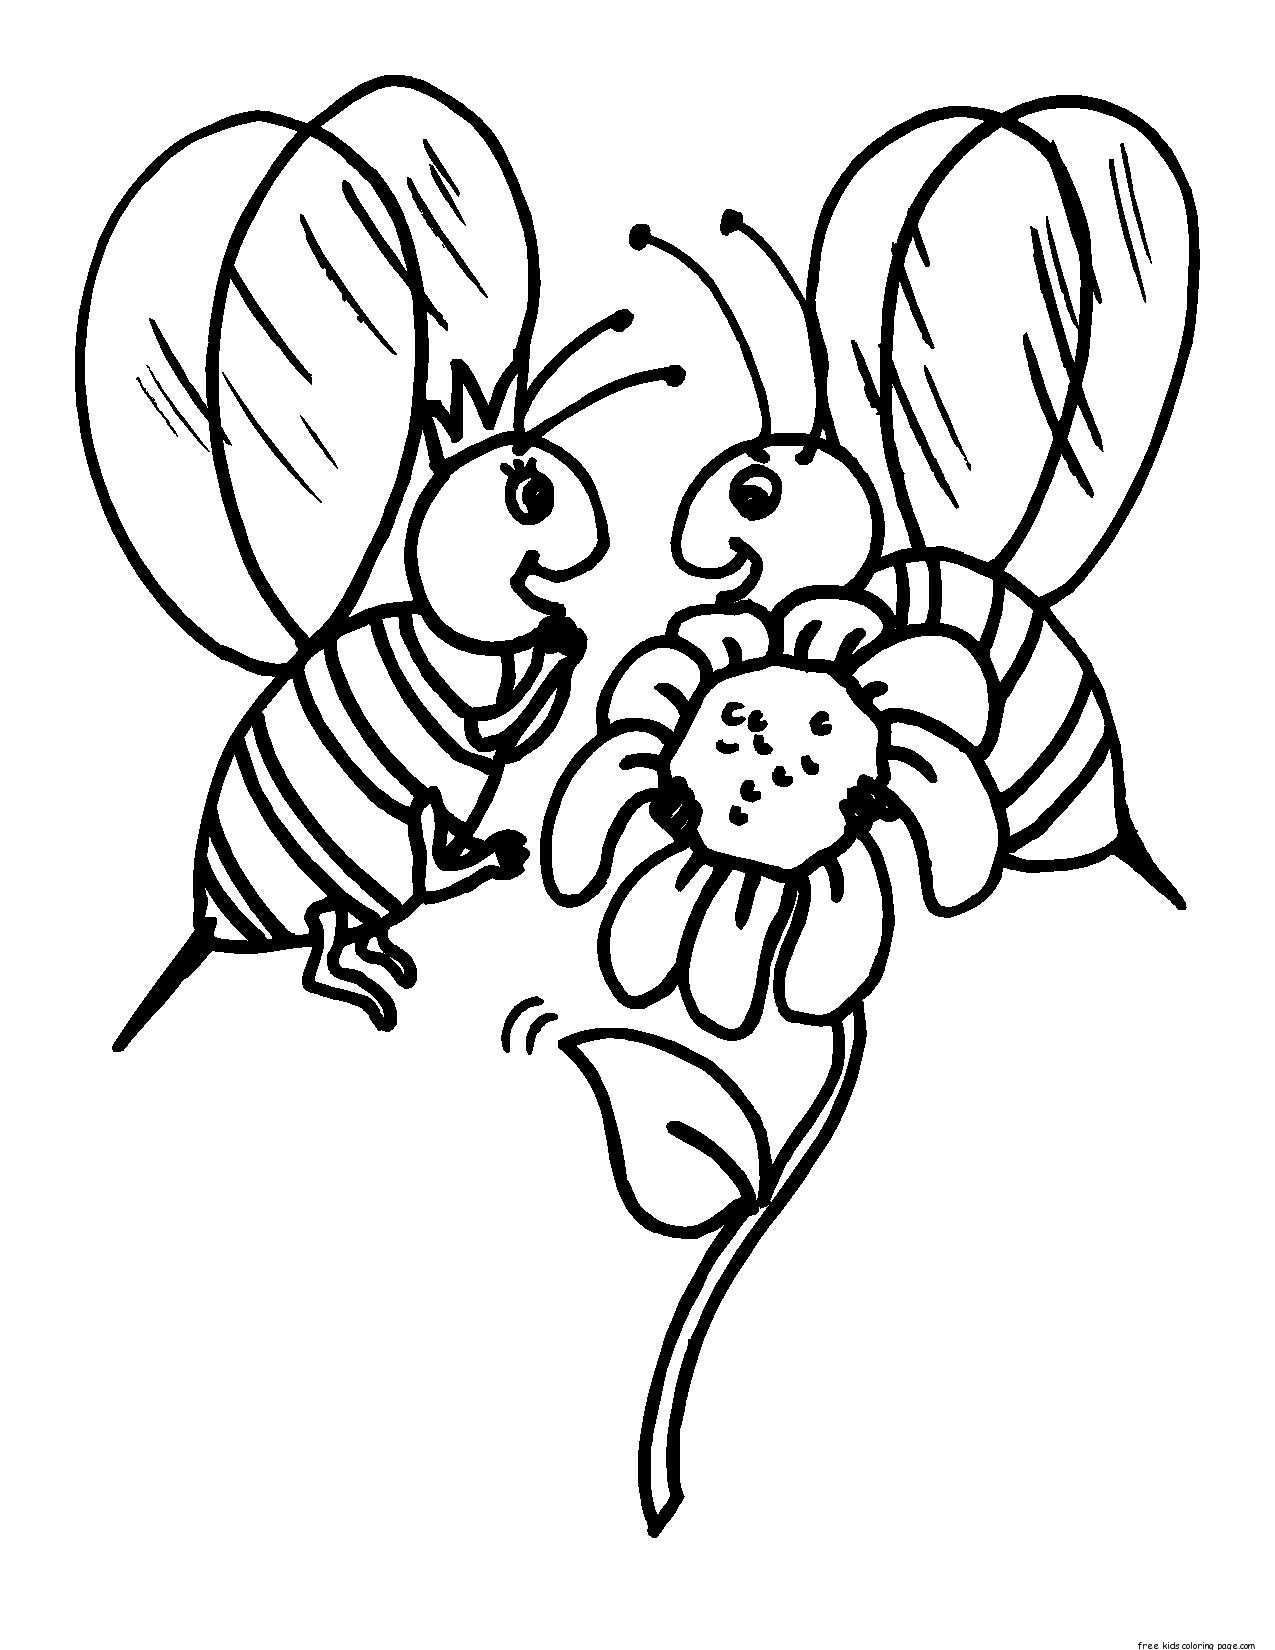 beekeeper coloring pages - printable insects bees coloring pages for kidsfree